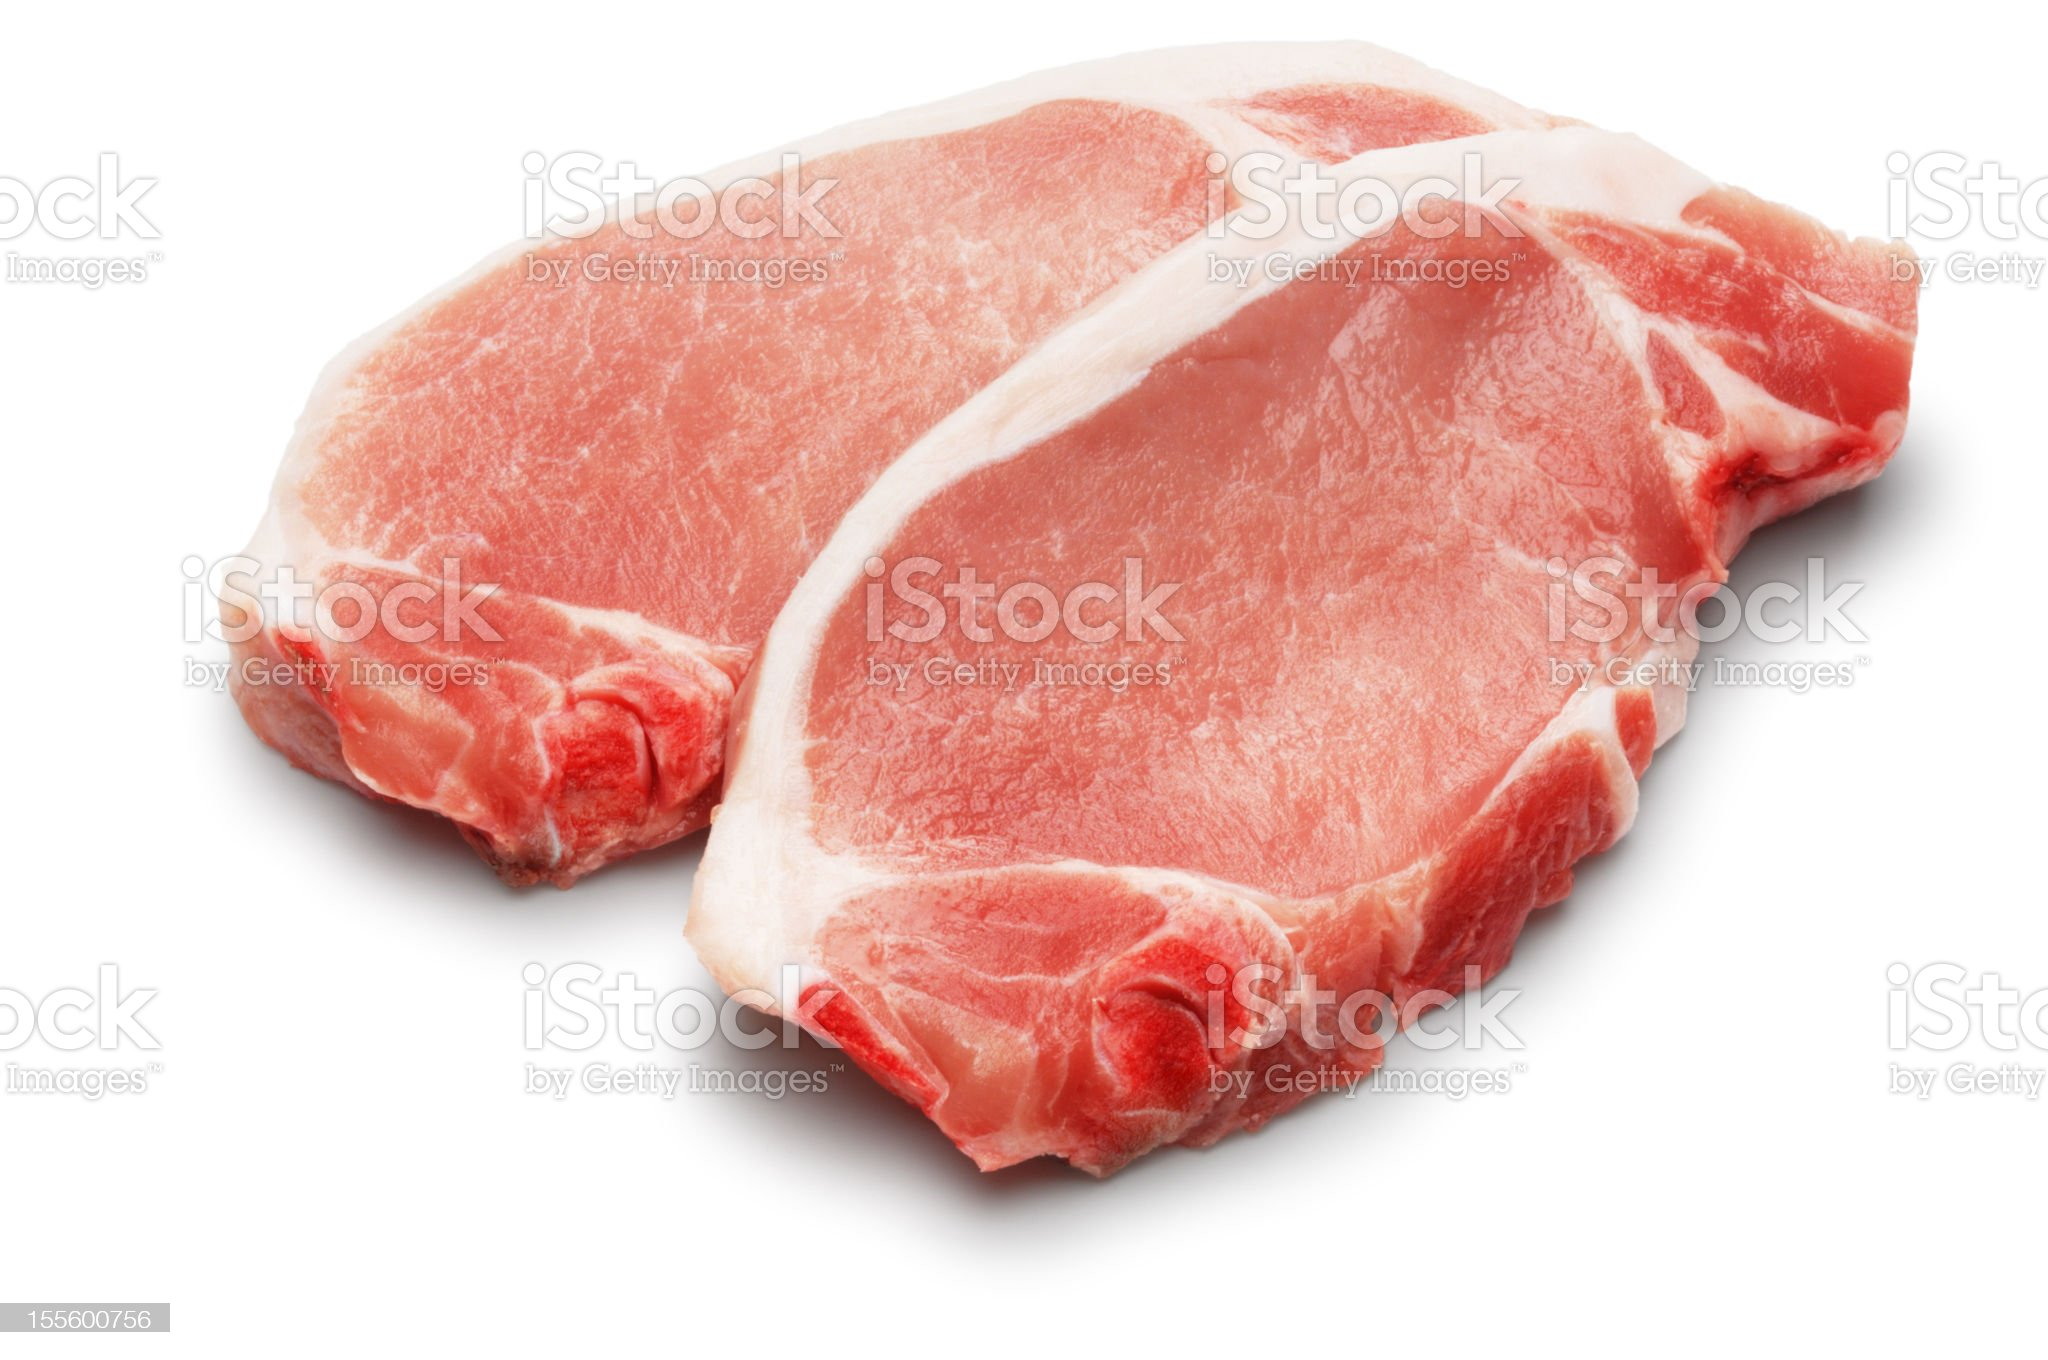 Two pork chops on white background royalty-free stock photo